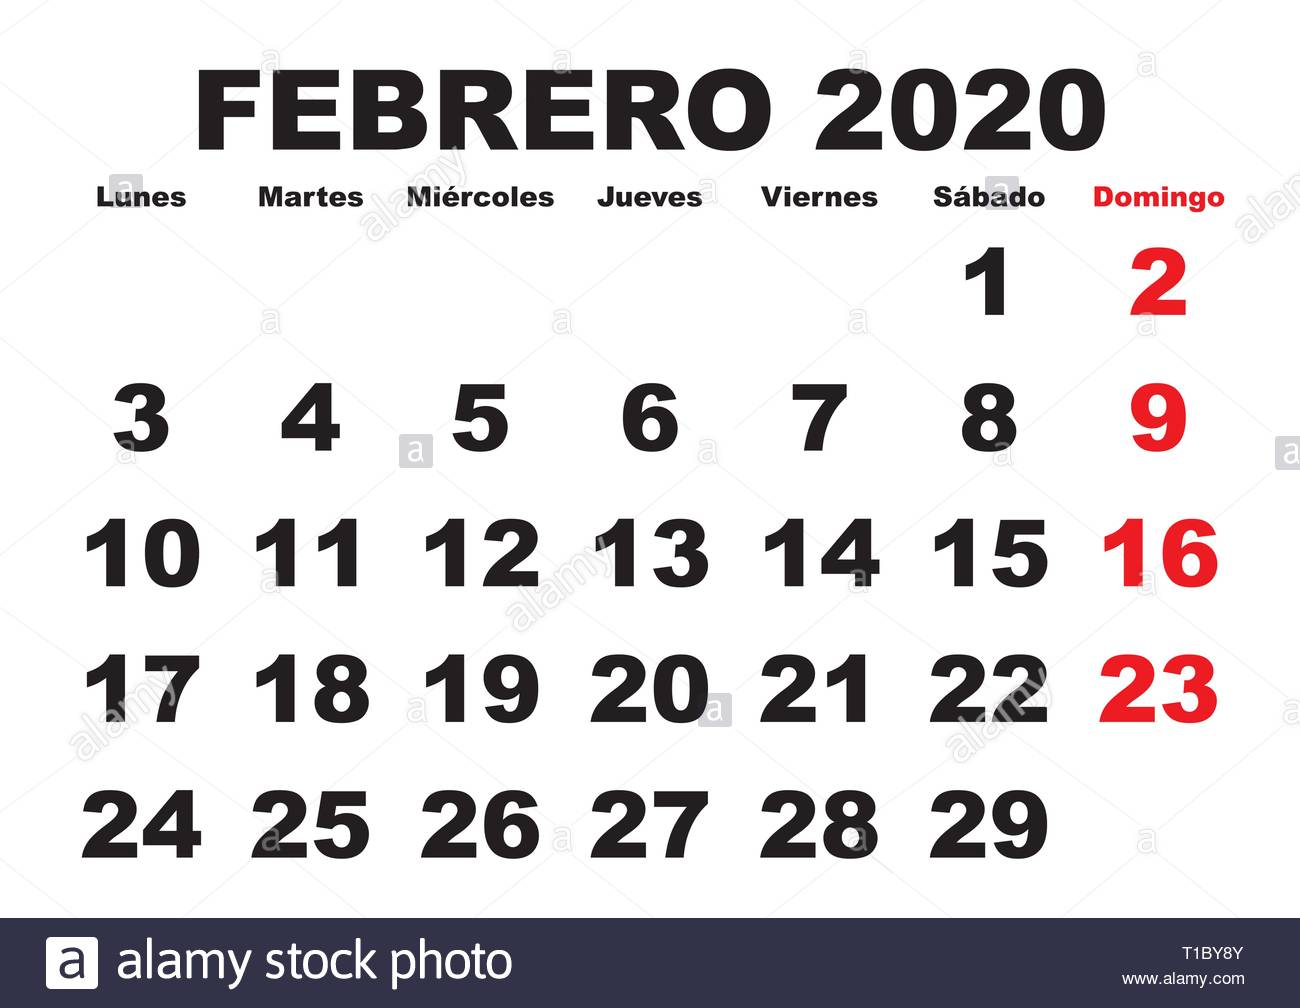 February 2020 Spanish Calendar Calendario 2020 Stock Photos & Calendario 2020 Stock Images   Alamy